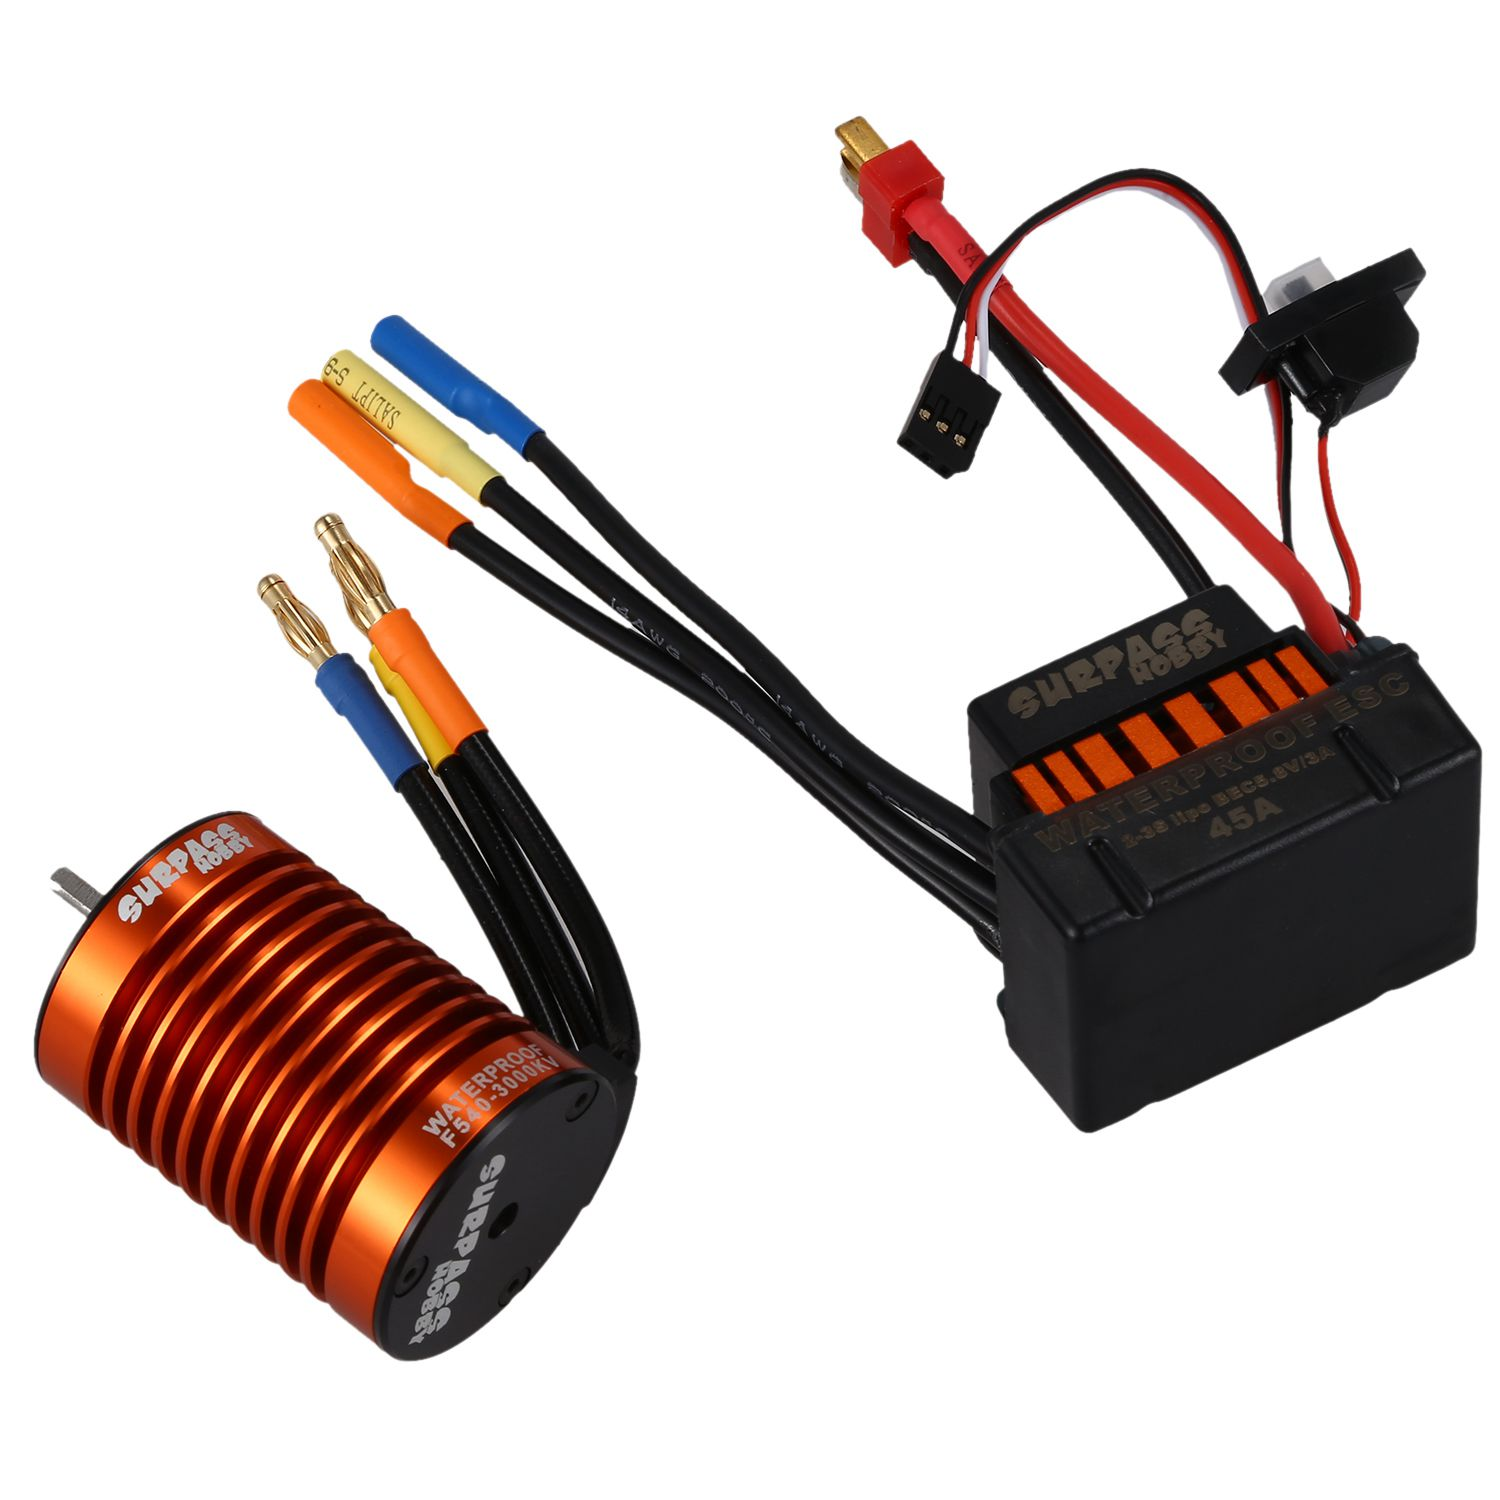 SURPASS HOBBY Upgrade Waterproof F540 3000KV Brushless Motor with 45A ESC Combo Set for 1/10 RC Car surpass hobby upgrade waterproof 3650 3900kv rc brushless motor with 60a esc combo set for 1 10 rc car truck motor kit